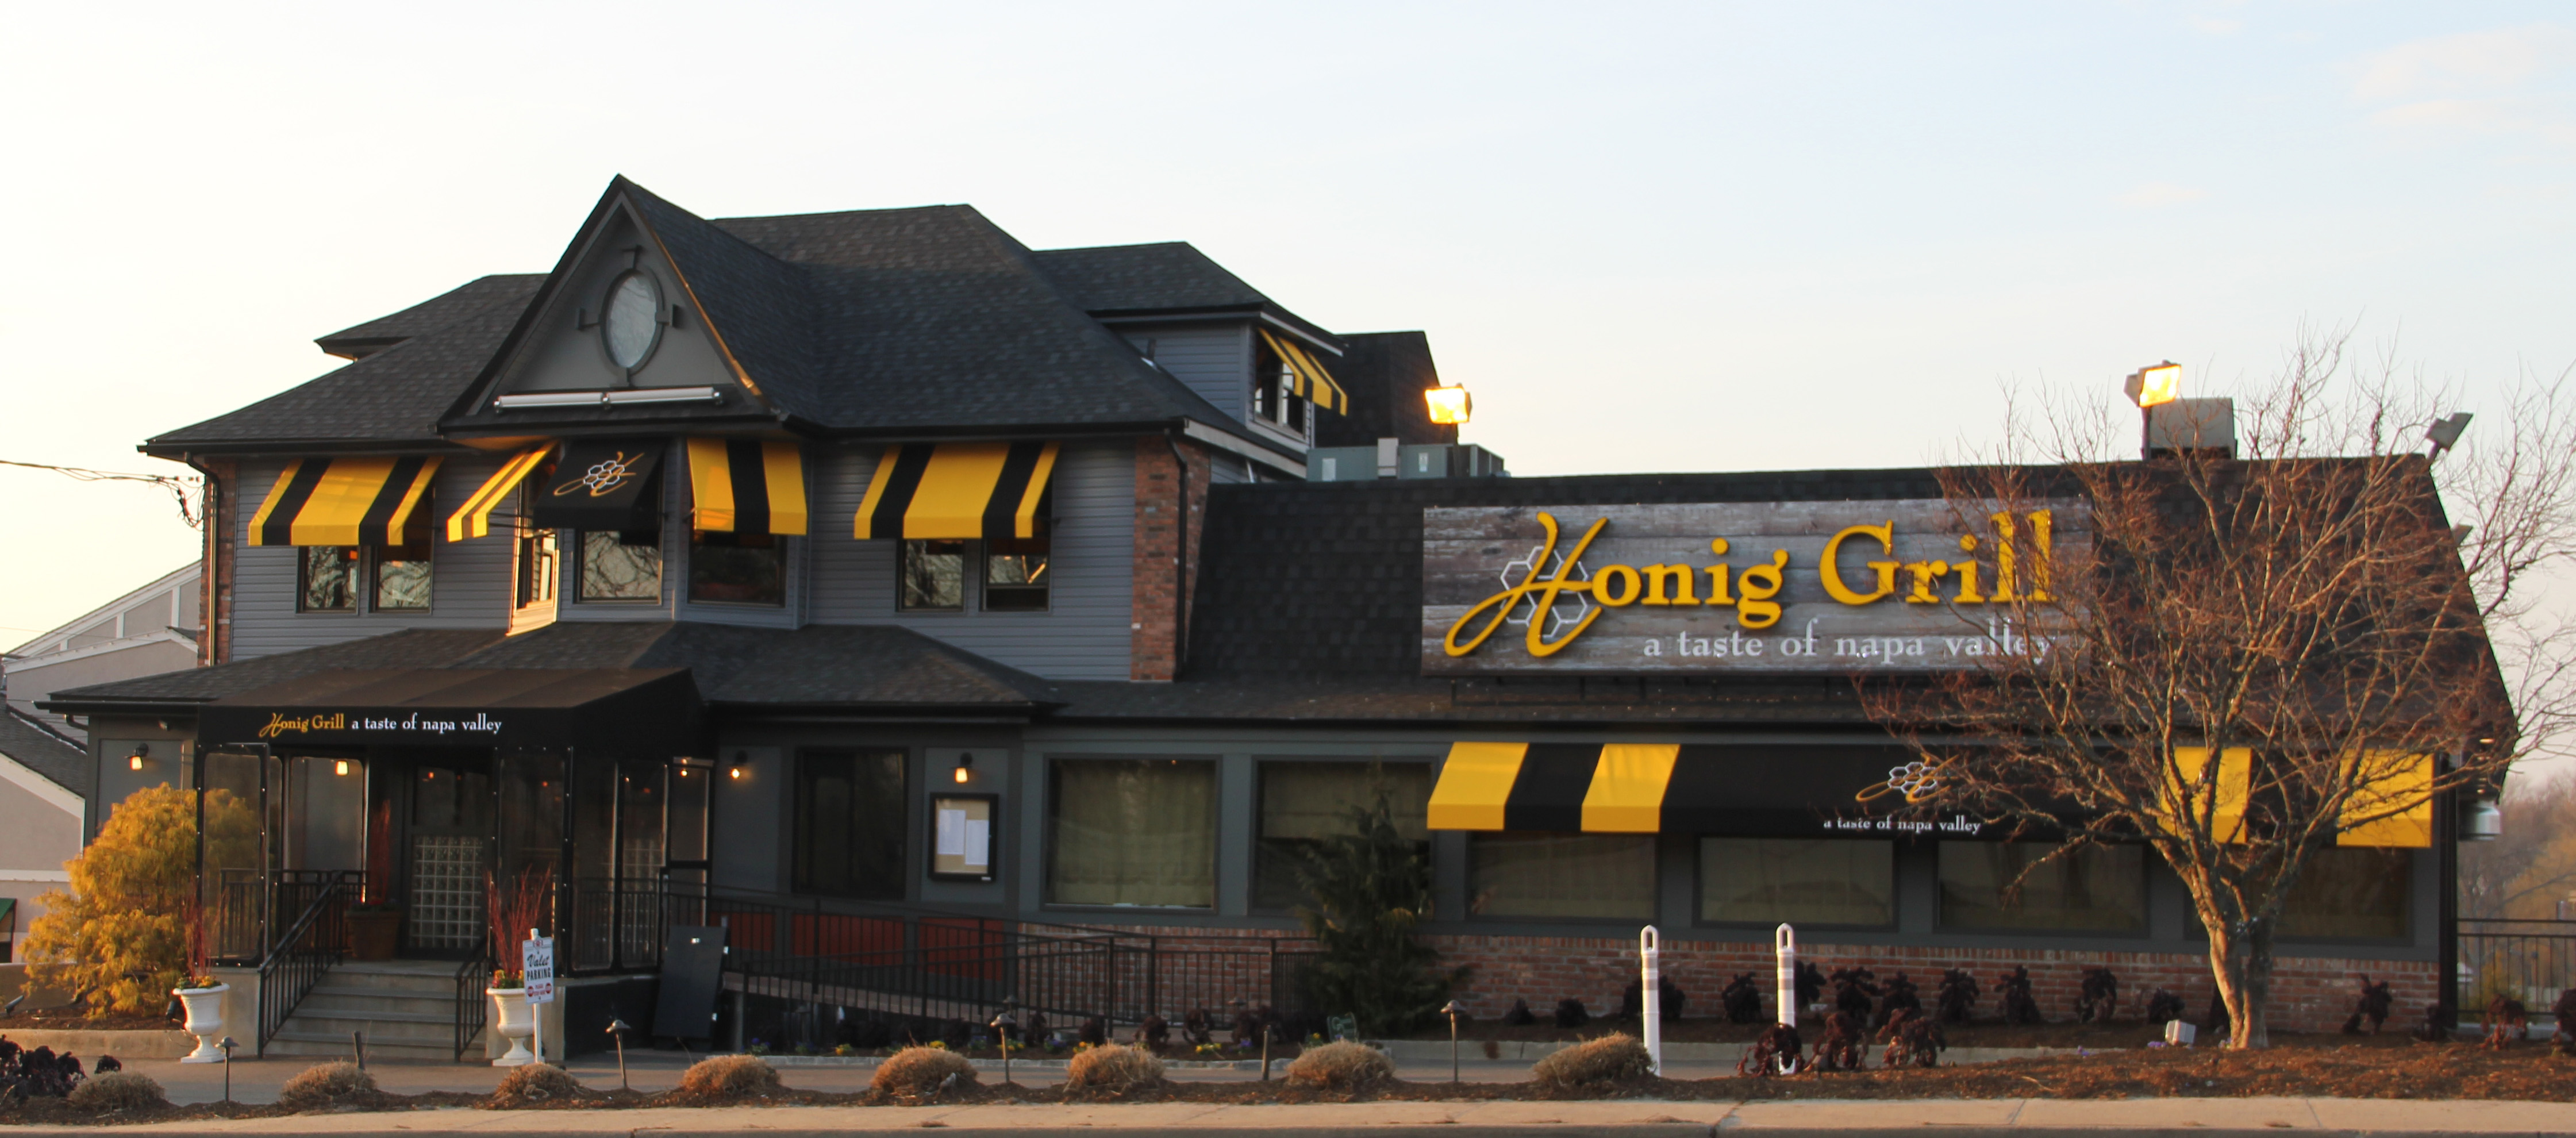 Honig Grill Brings the Taste of Napa Valley to Long Island | Long ...